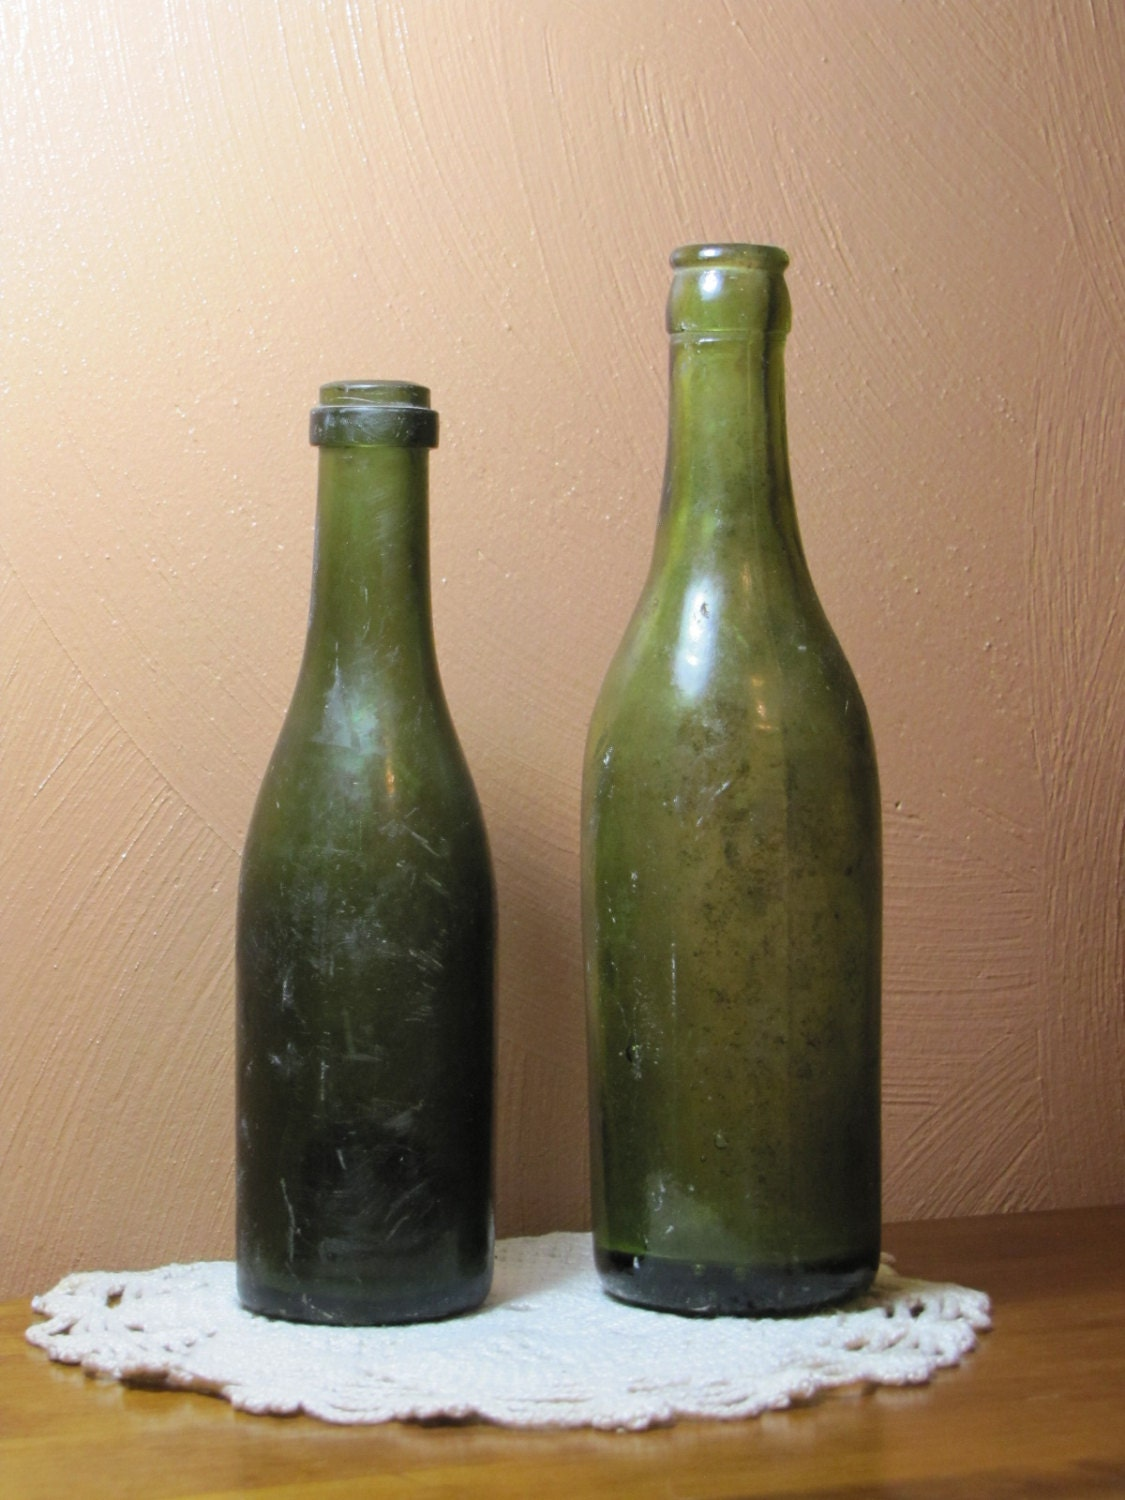 Old green bottles photos How can I reuse or recycle pretty, old perfume bottles